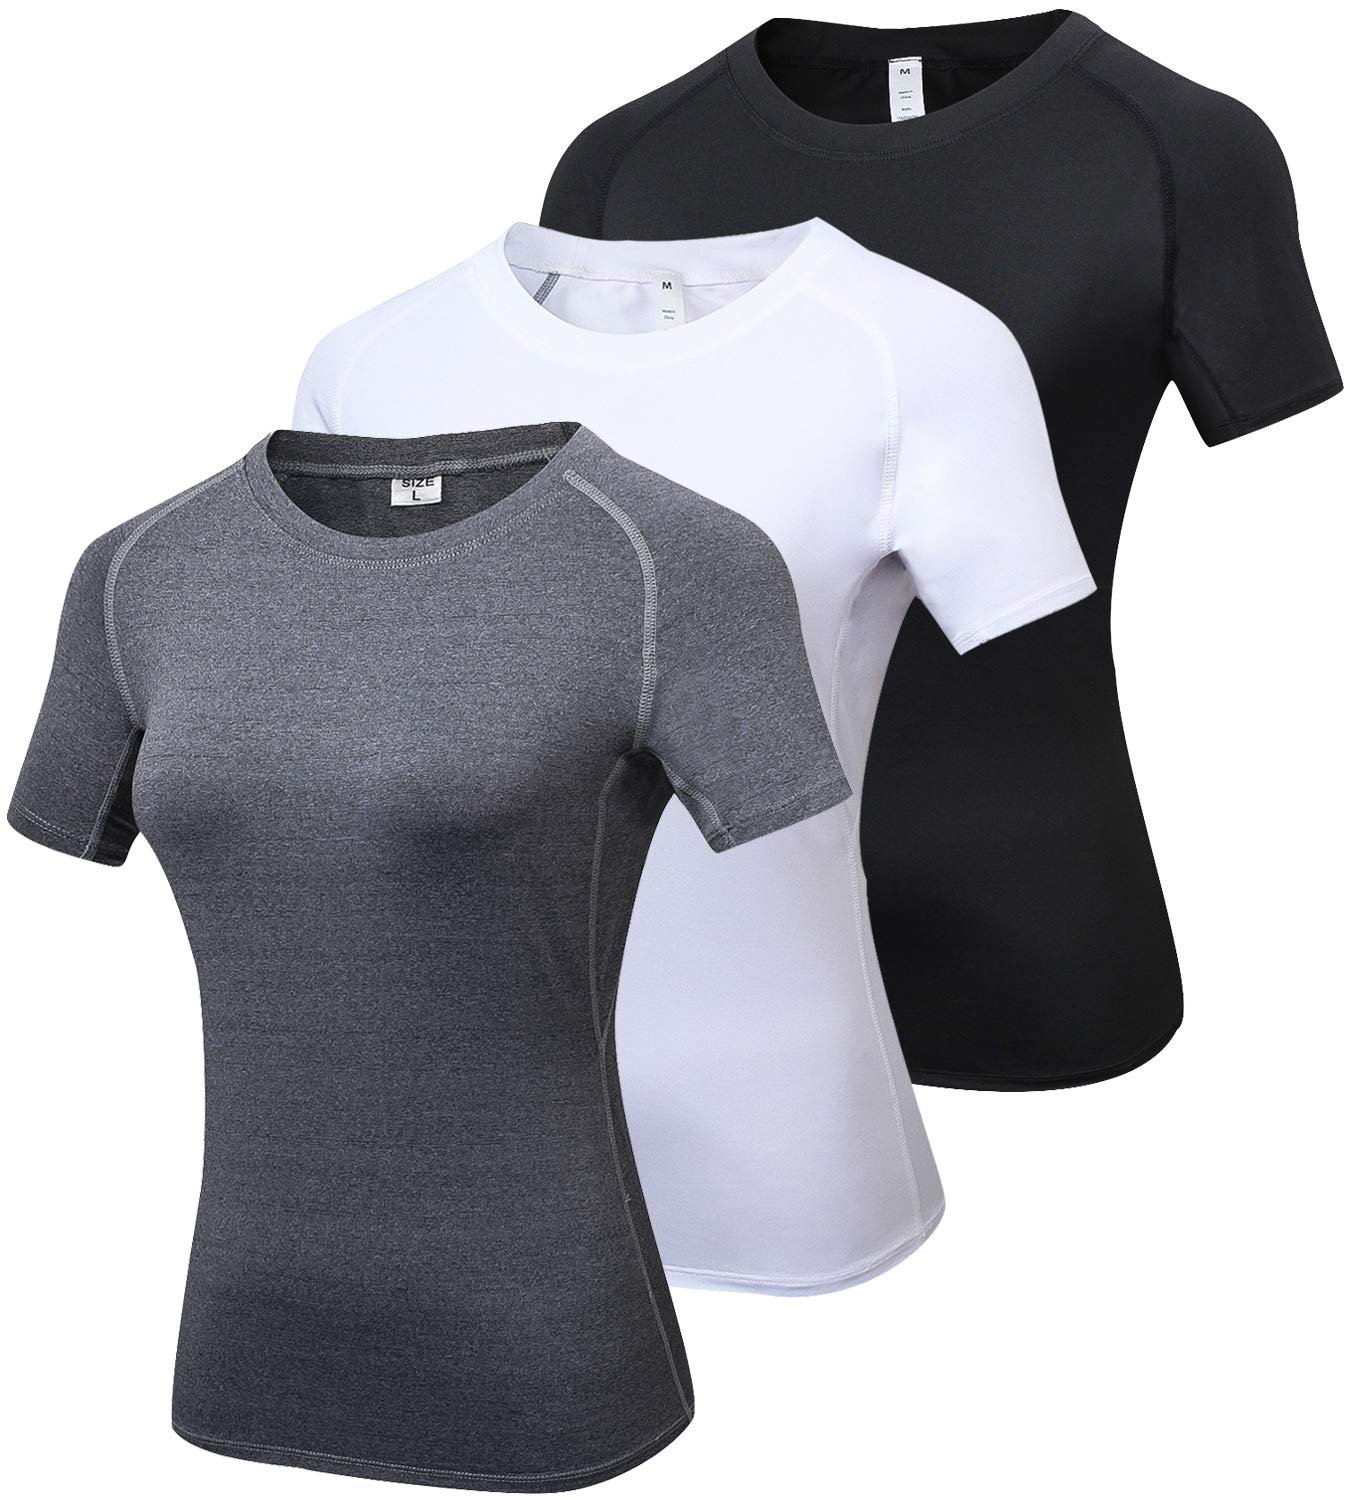 44b04dfb5 Lavento Women s Compression Shirts Crewneck Short-Sleeve Athletic T-Shirts  product image